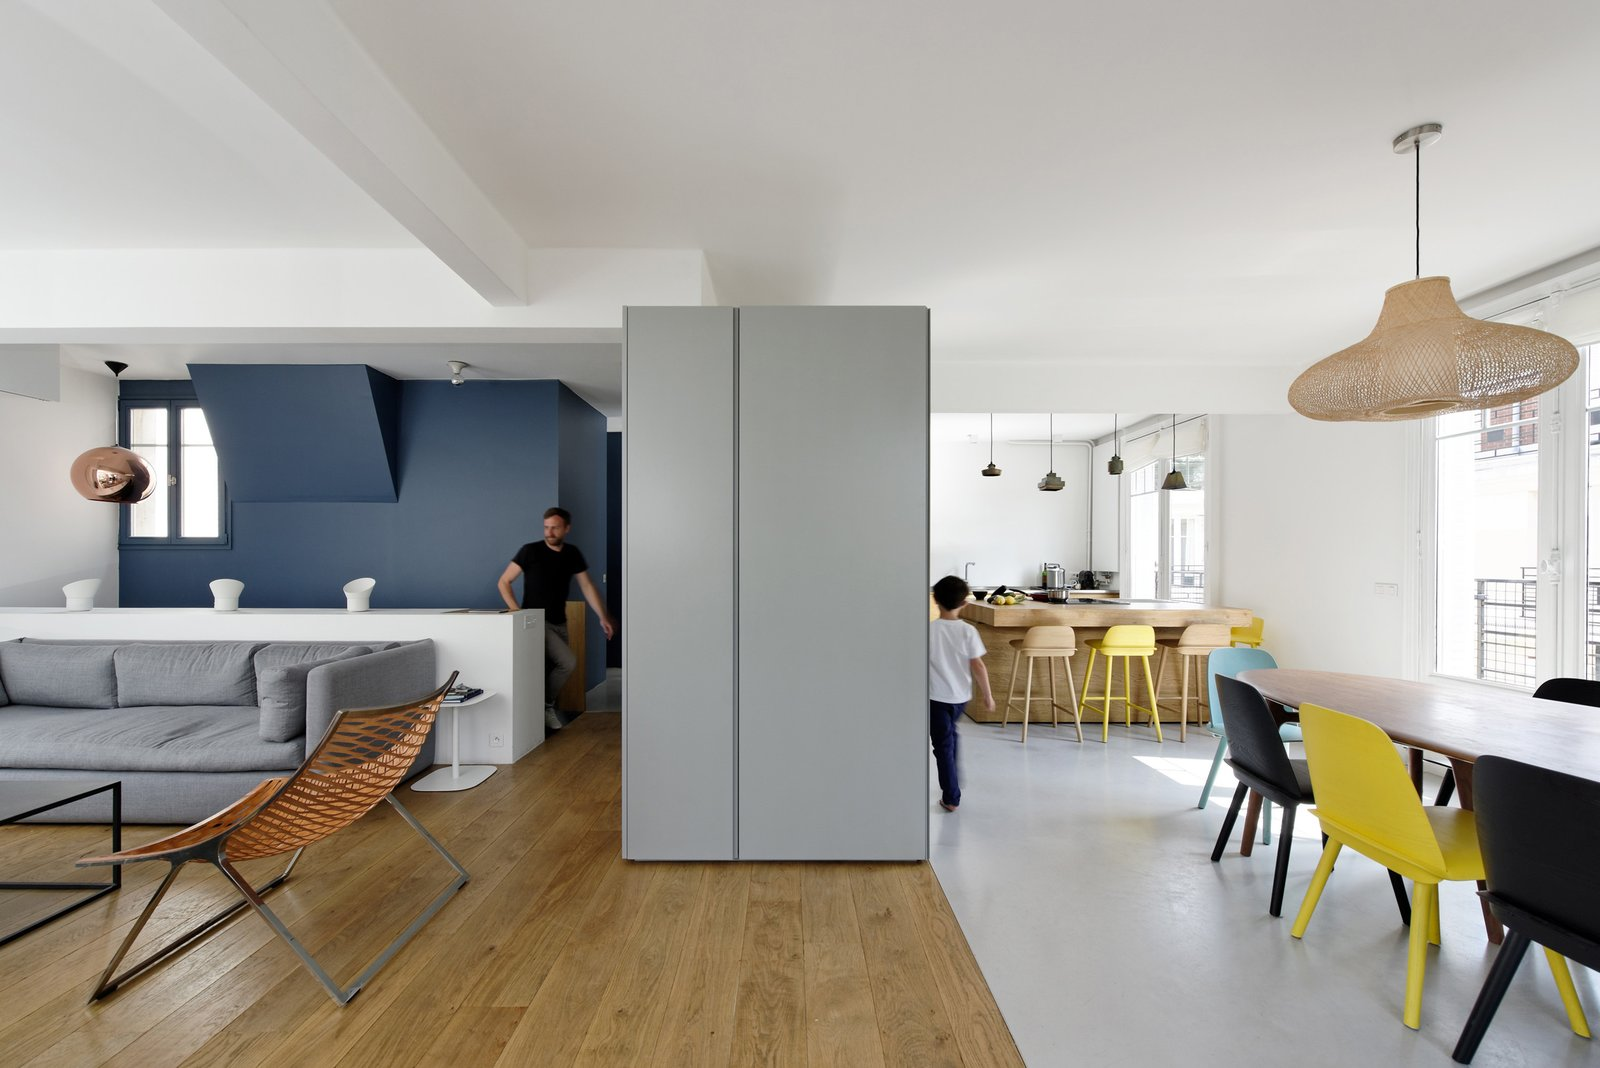 """The upper floor includes the entry, cloakroom, guest bathroom, kitchen, dining room, living room, and terrace,"" Hammer says. ""In contrast to the lower floor and its separated rooms, the living area is composed as an open space with no walls."" Nerd Chairs by David Geckeler for Muuto surround a handcrafted nutwood table in the dining room.  Photo 7 of 10 in 10 Modern Renovations to Unique Homes in France from How Many Apartments Does it Take to Make One Home?"